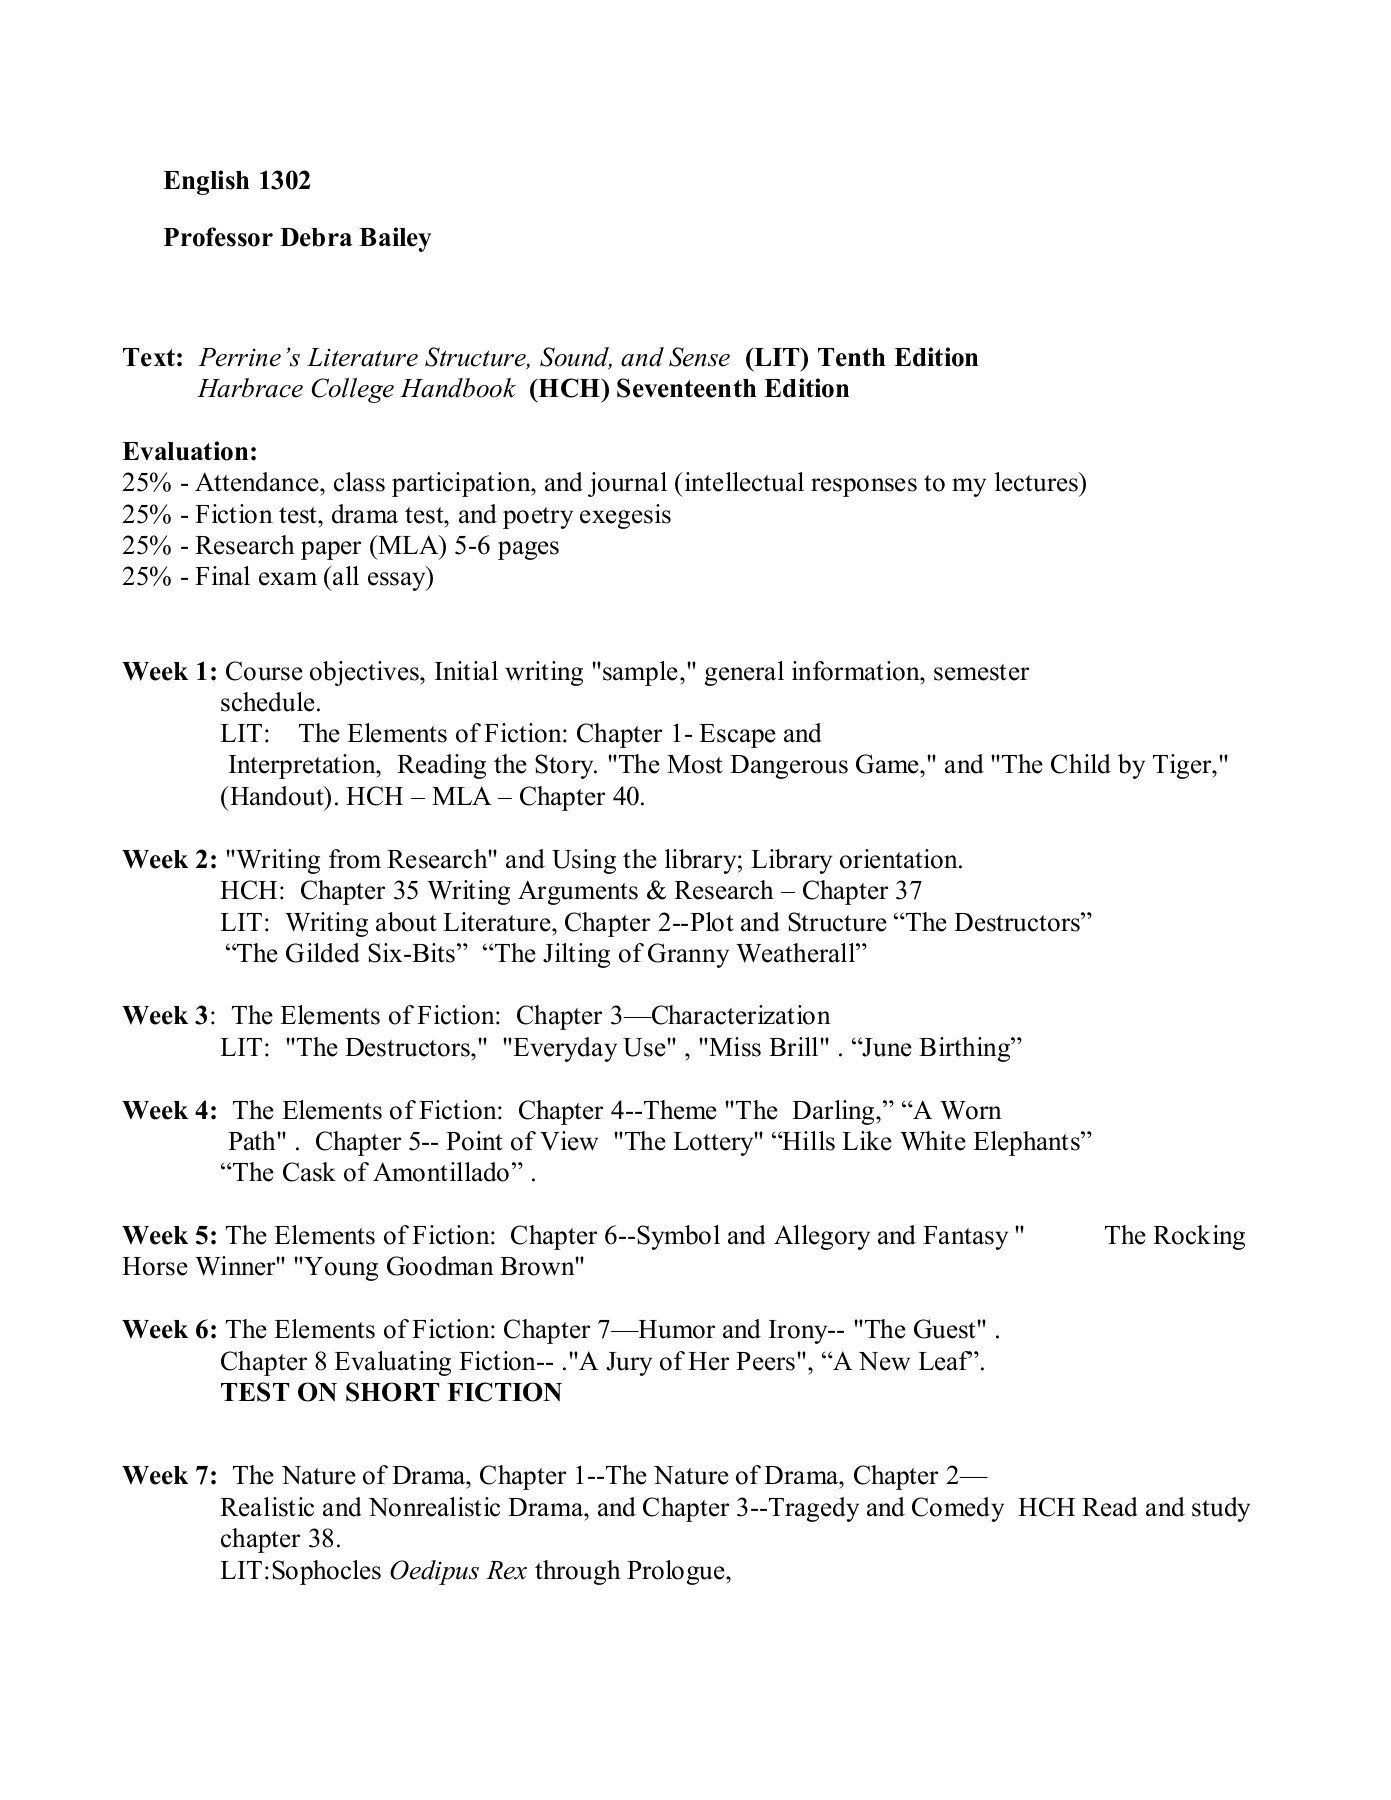 The Rocking Horse Winner Worksheet English 1302 Professor Debra Bailey Class Participation Worksheets Exegesis